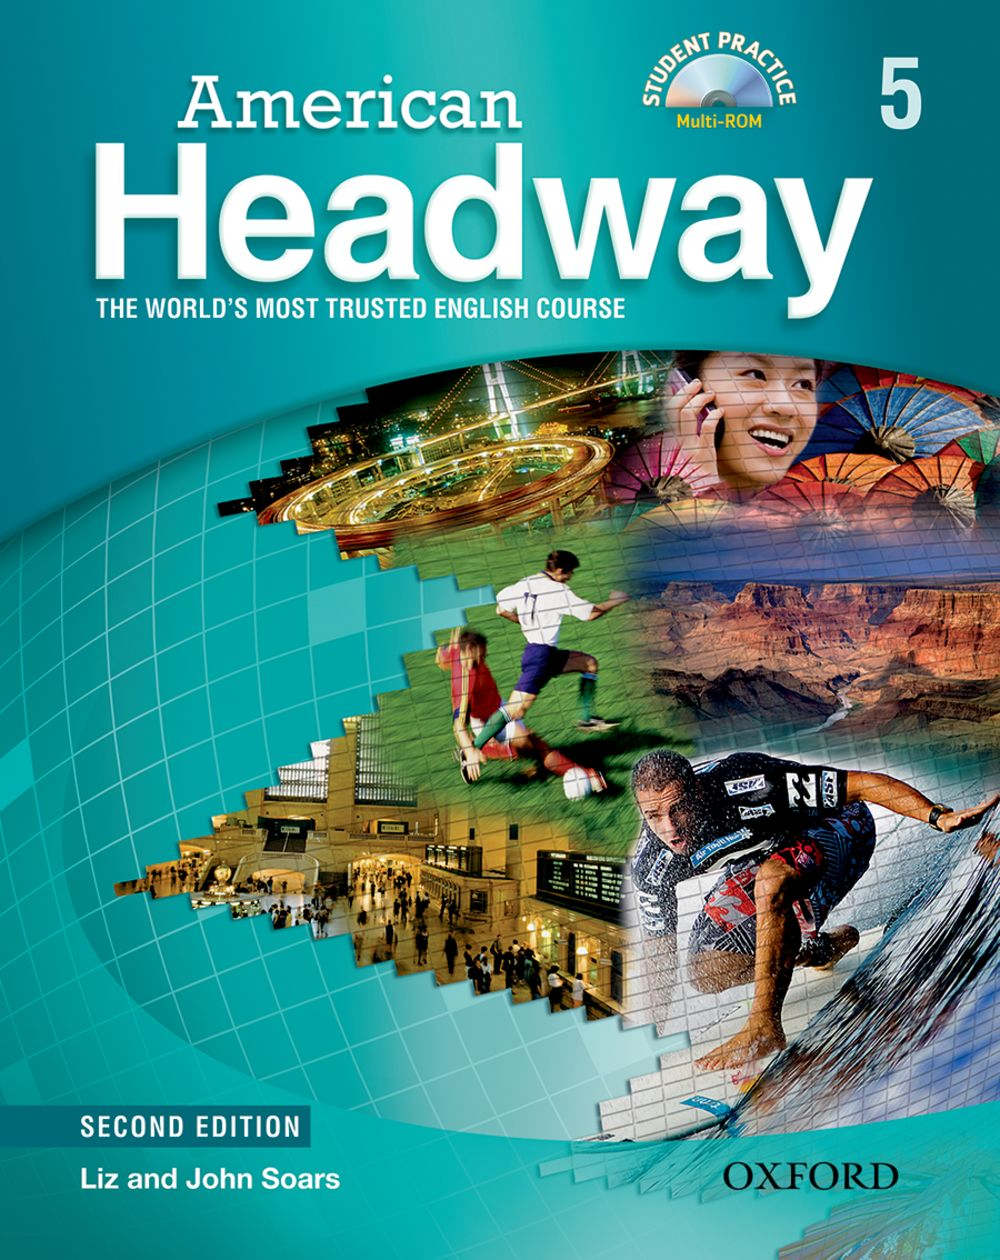 American Headway: Student Book with Student Practice MultiROM Level 5